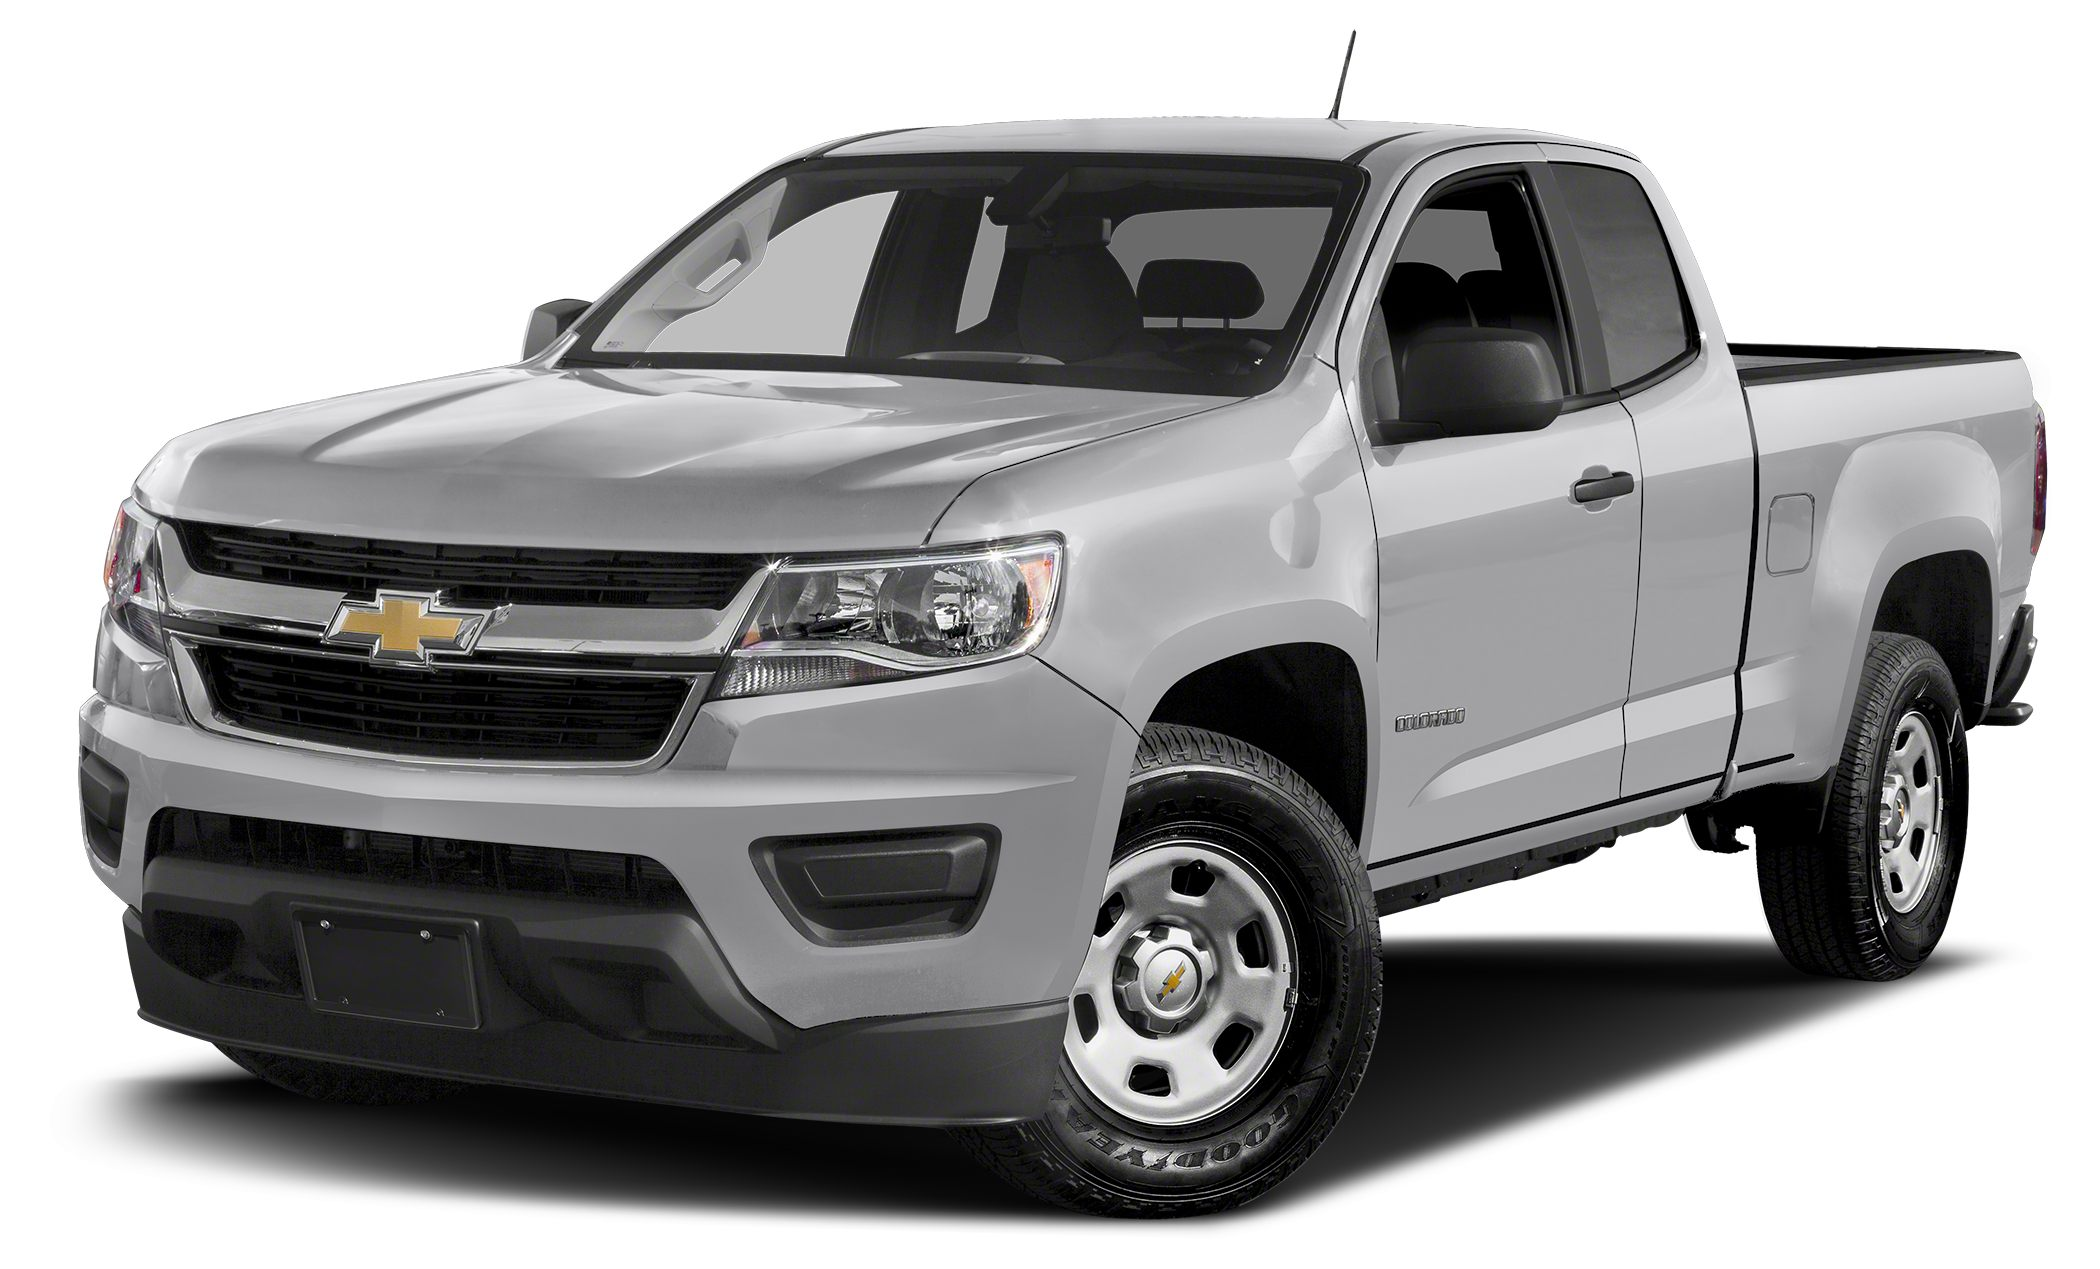 2017 Chevrolet Colorado WT Come on over to Scenic Chevrolet and talk with our friendly and knowled